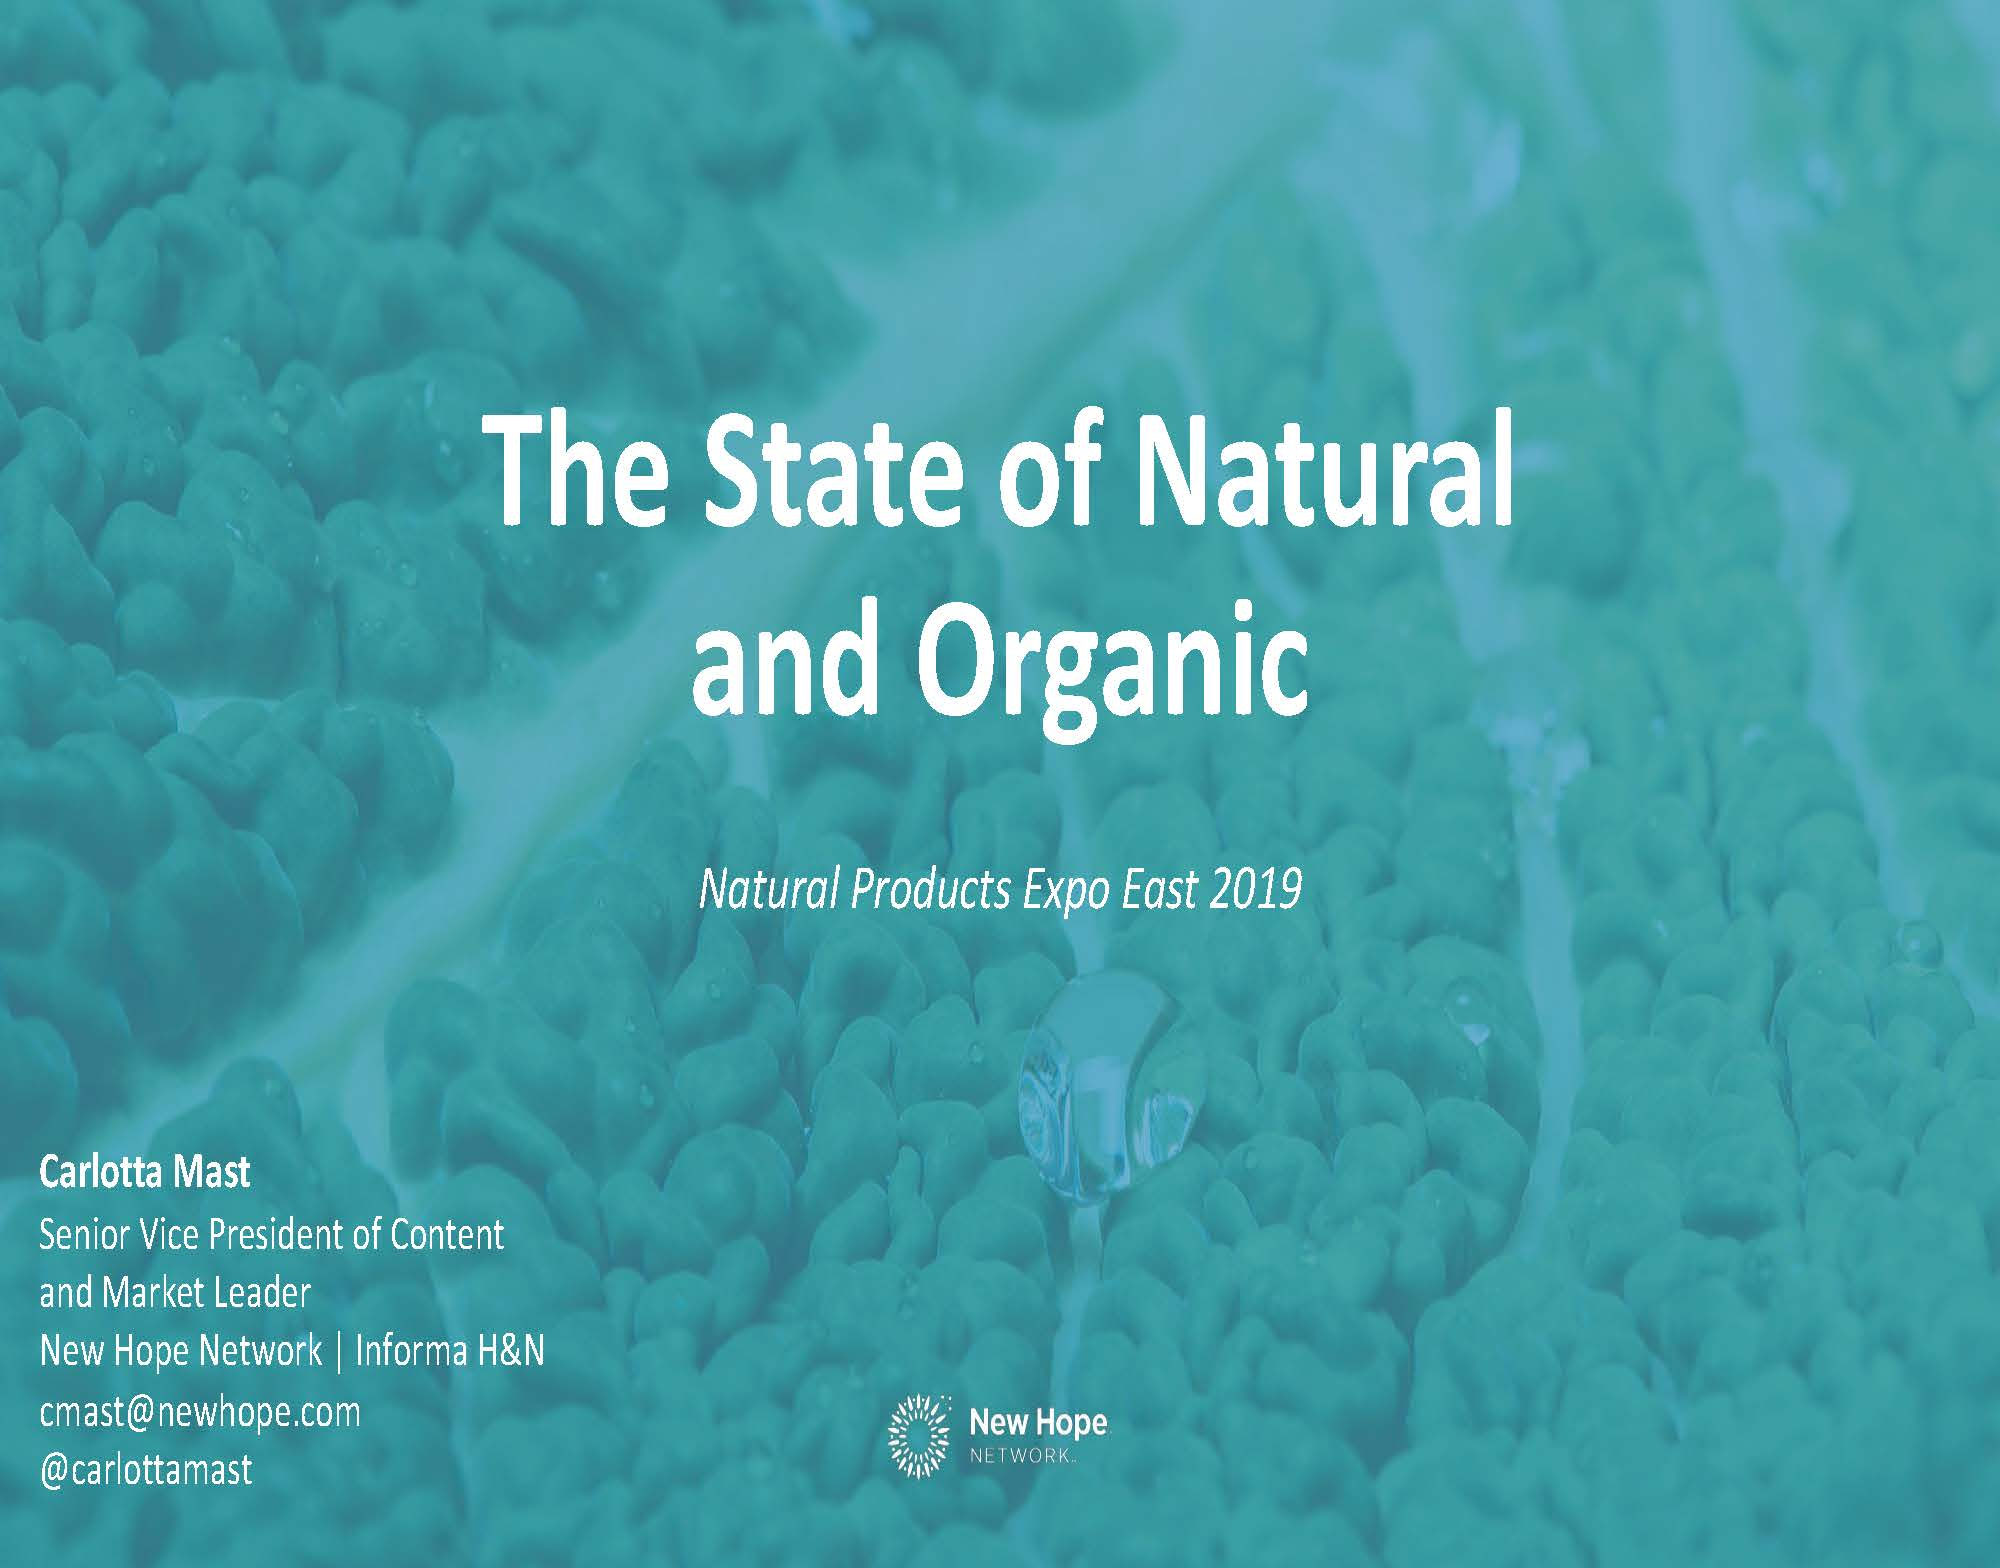 Expo East 2019 State of Natural and Organic Slides